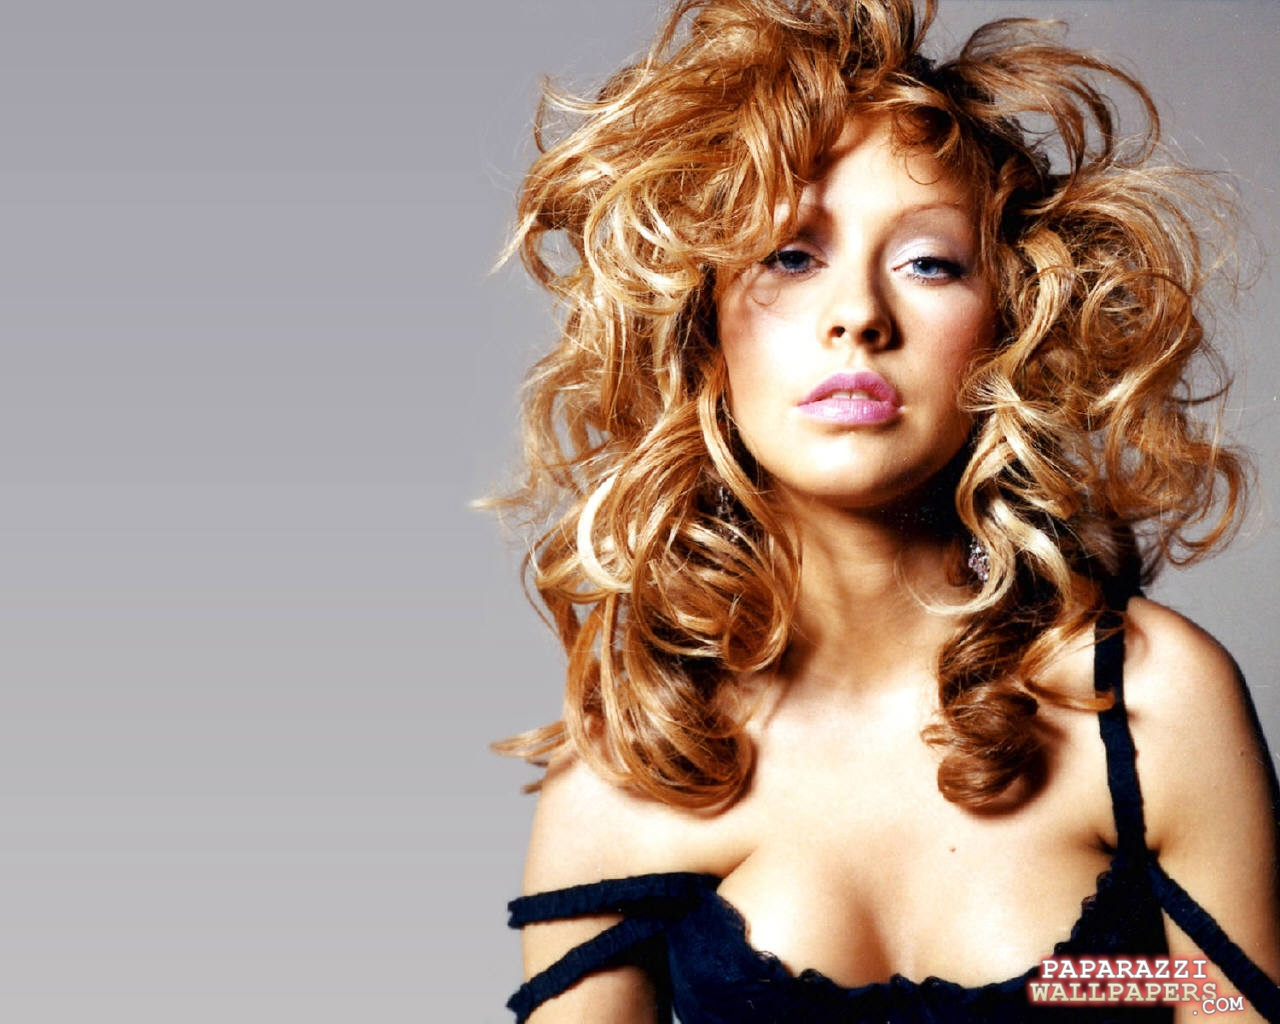 christina aguilera wallpapers 072